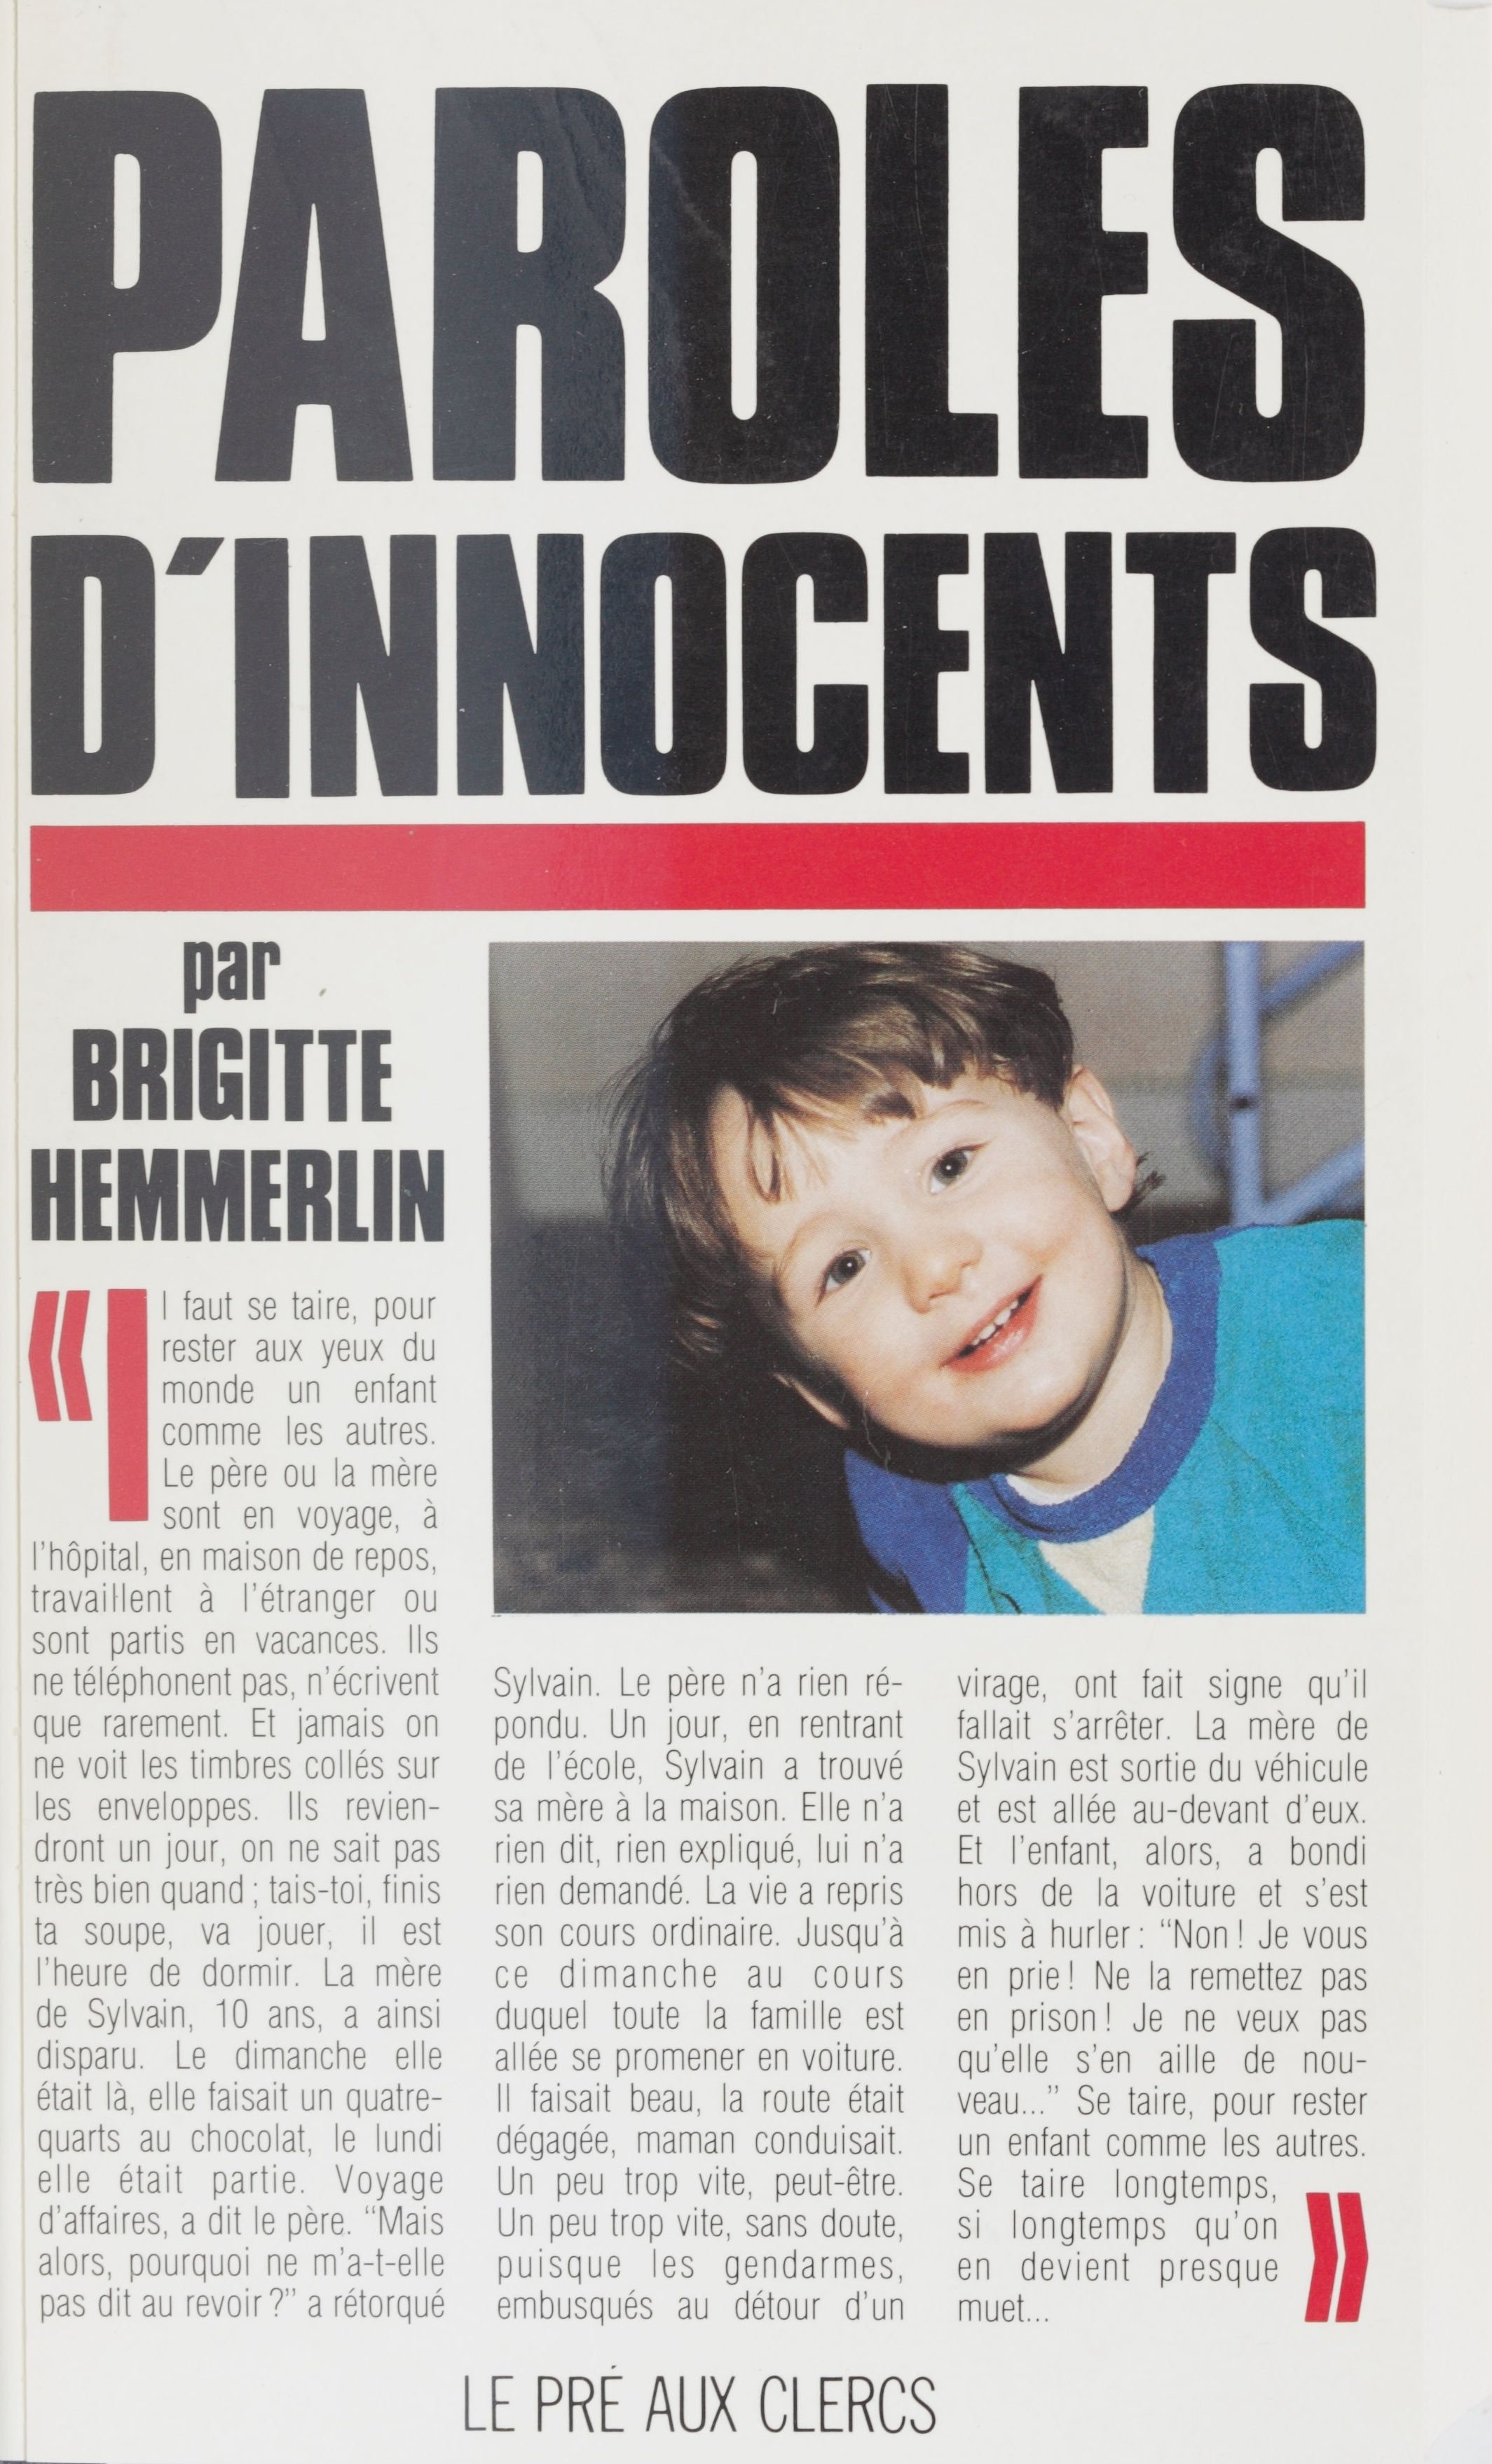 Paroles d'innocents